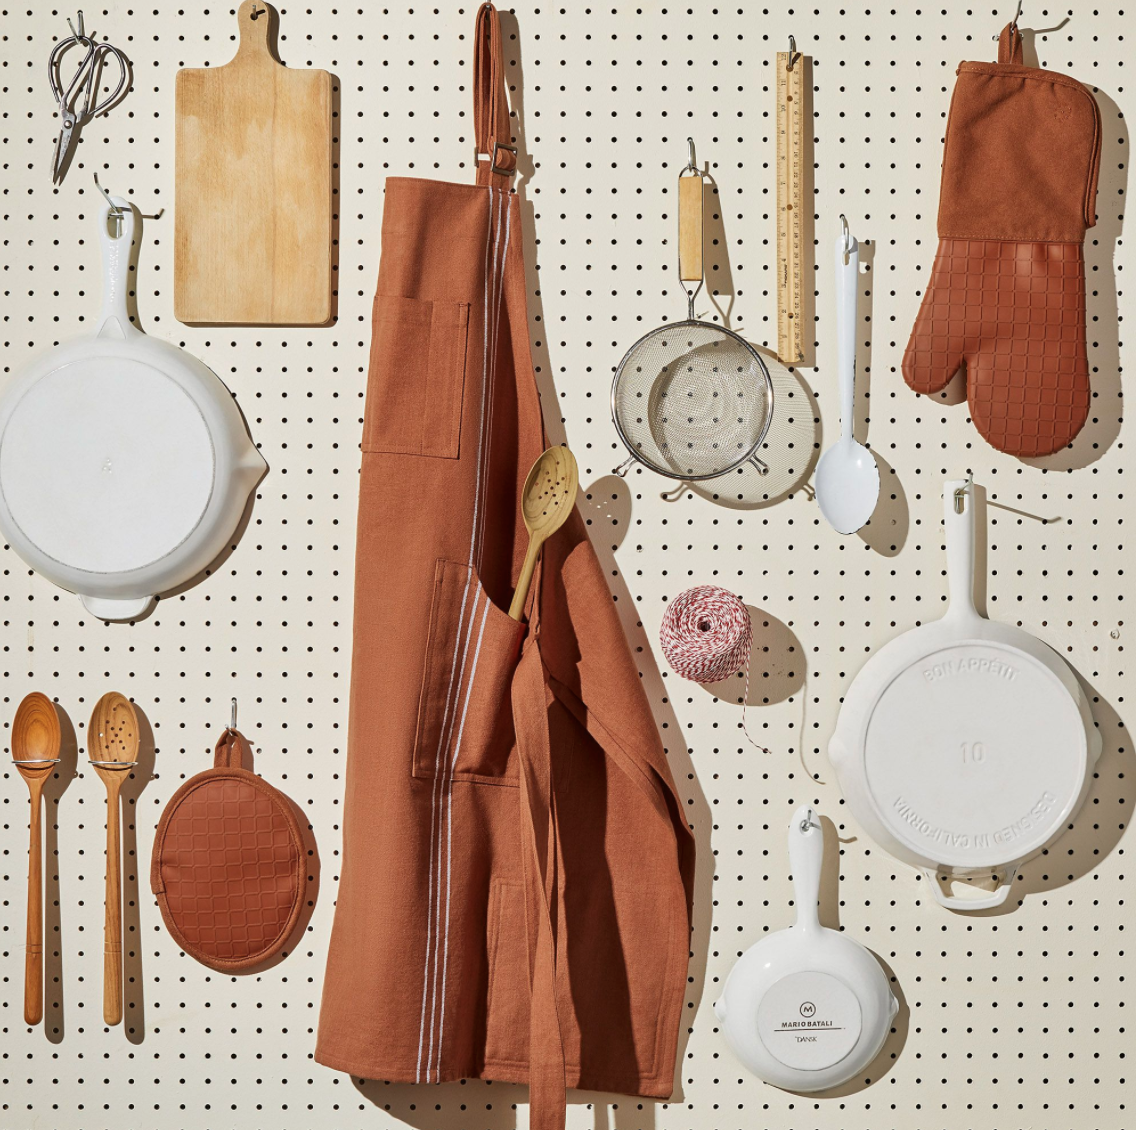 gifts for people who like to cook - aprons